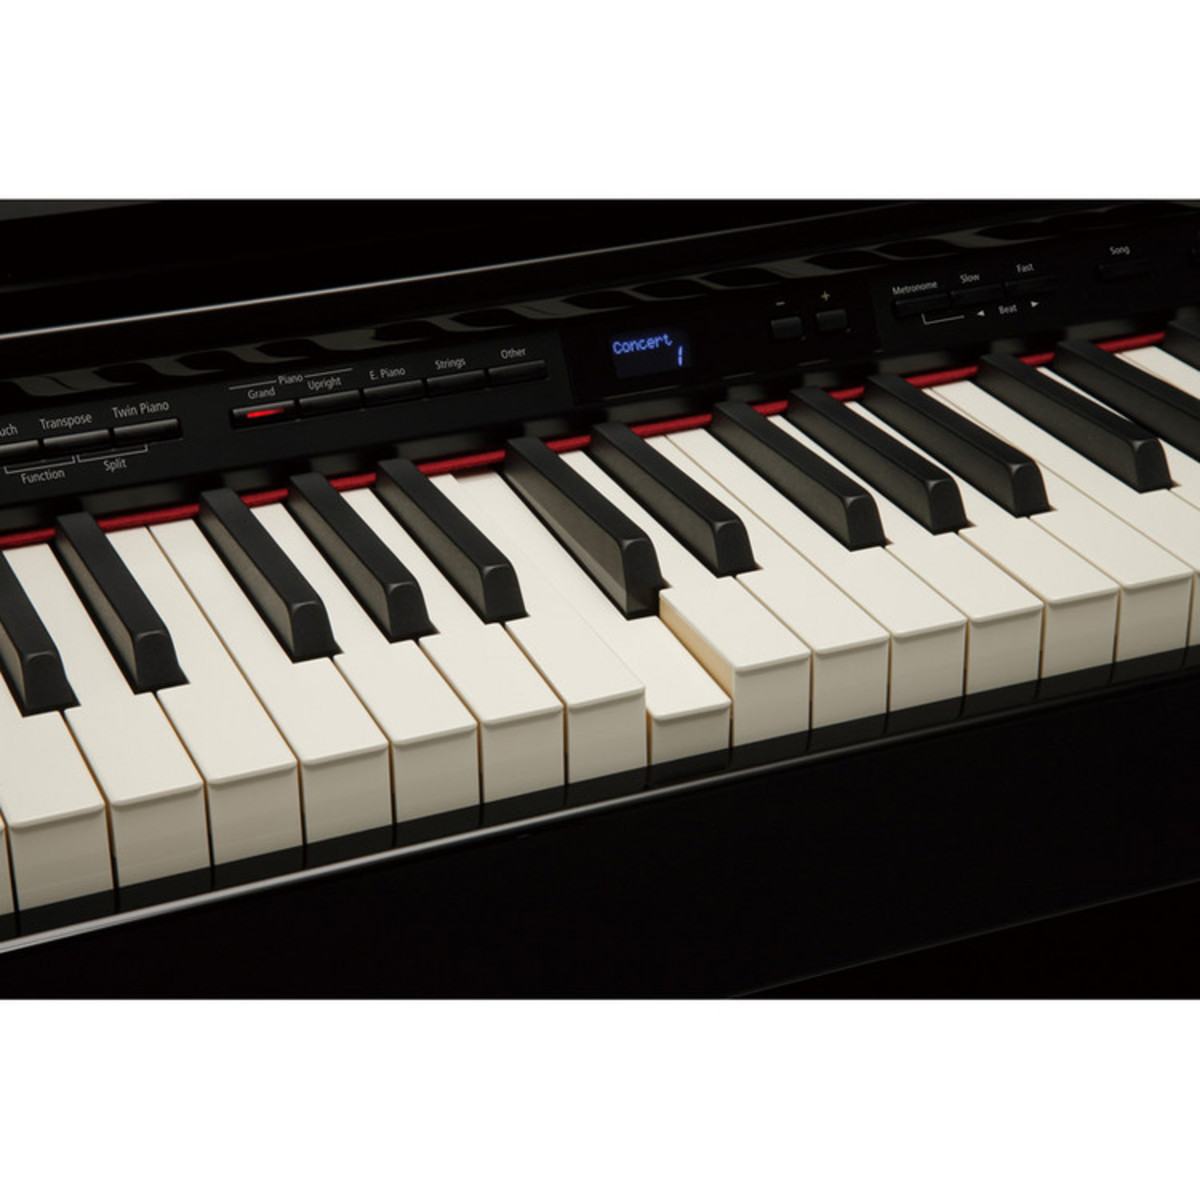 Roland Piano Keyboard : roland dp90se digital piano polished ebony at gear4music ~ Vivirlamusica.com Haus und Dekorationen